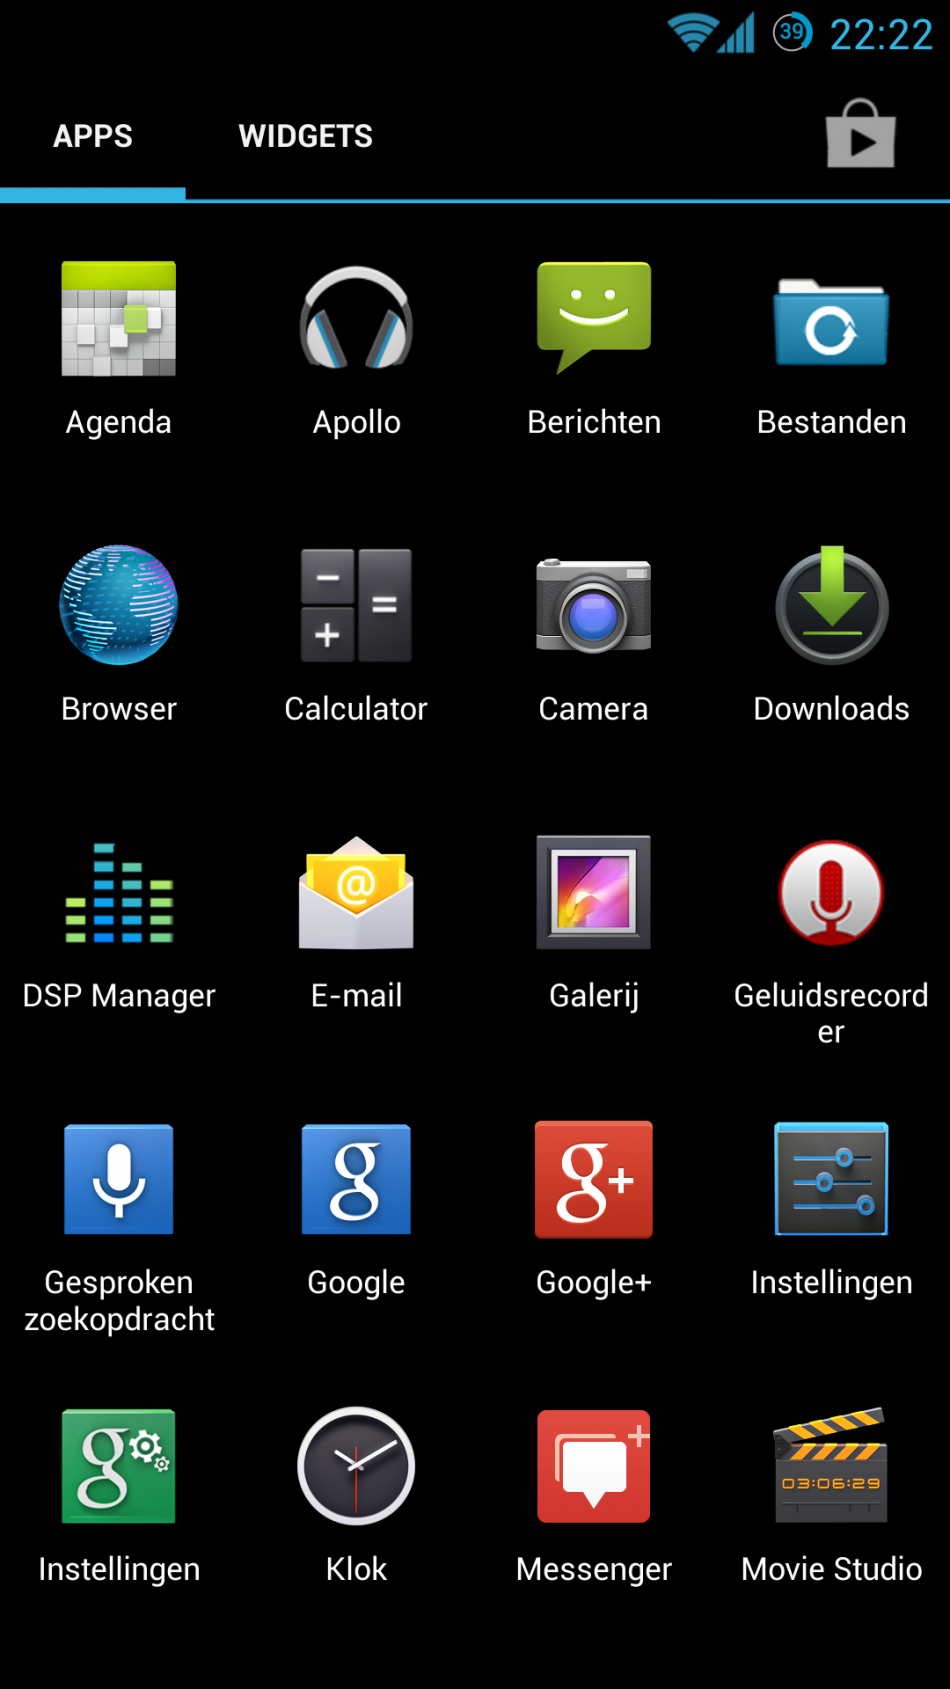 Update Galaxy S4 I9505 (Snapdragon 600) to Android 4.2.2 Jelly Bean via CyanogenMod 10.1 Nightly ROM [How to Install]